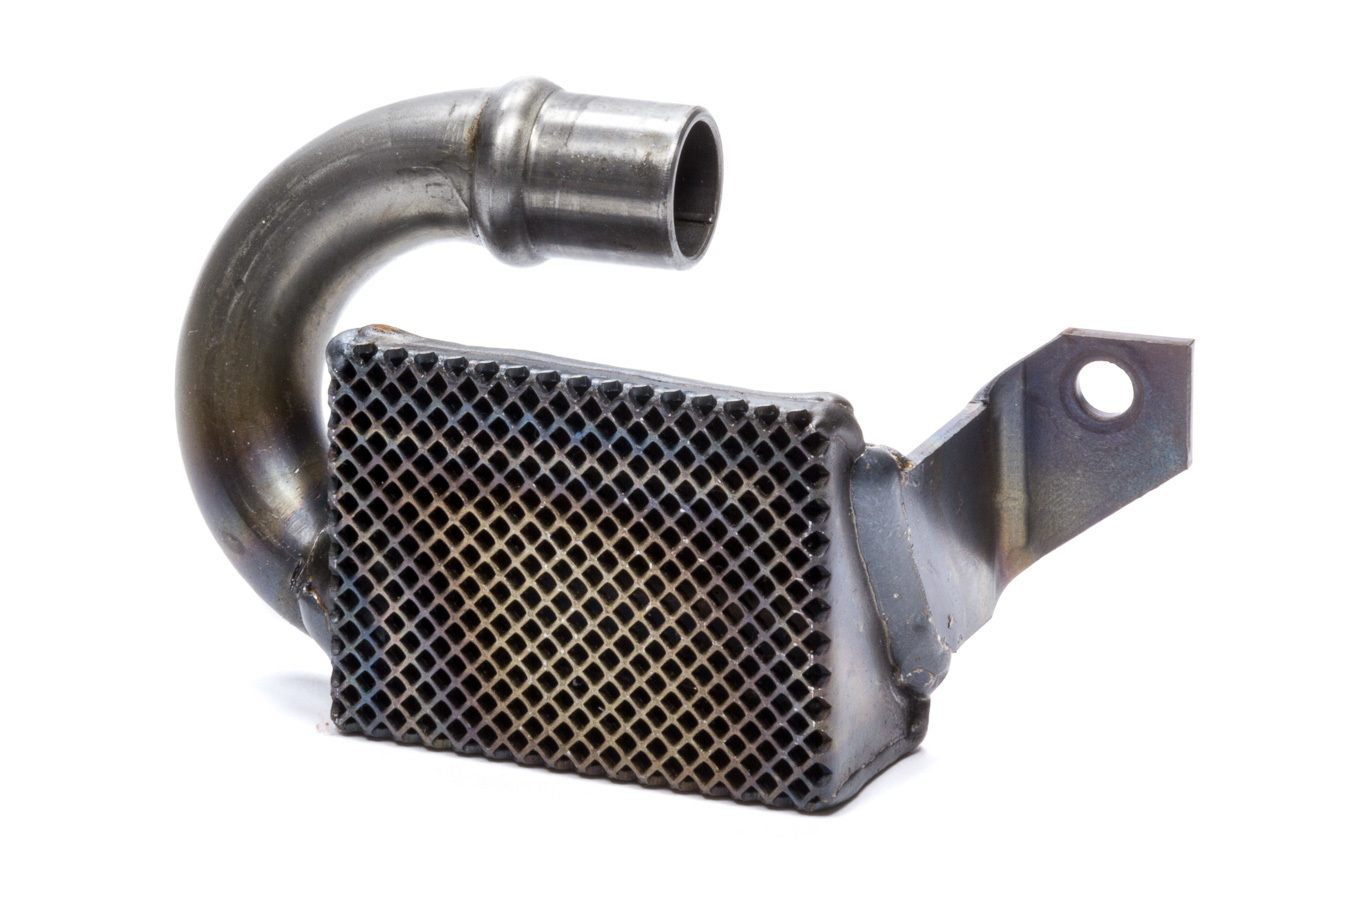 Champ Pans 51SB Oil Pump Pickup, Competition, Press / Bolt-On, 3/4 in Inlet Tube, 7-3/4 in Deep Pan, Small Block Chevy, Each